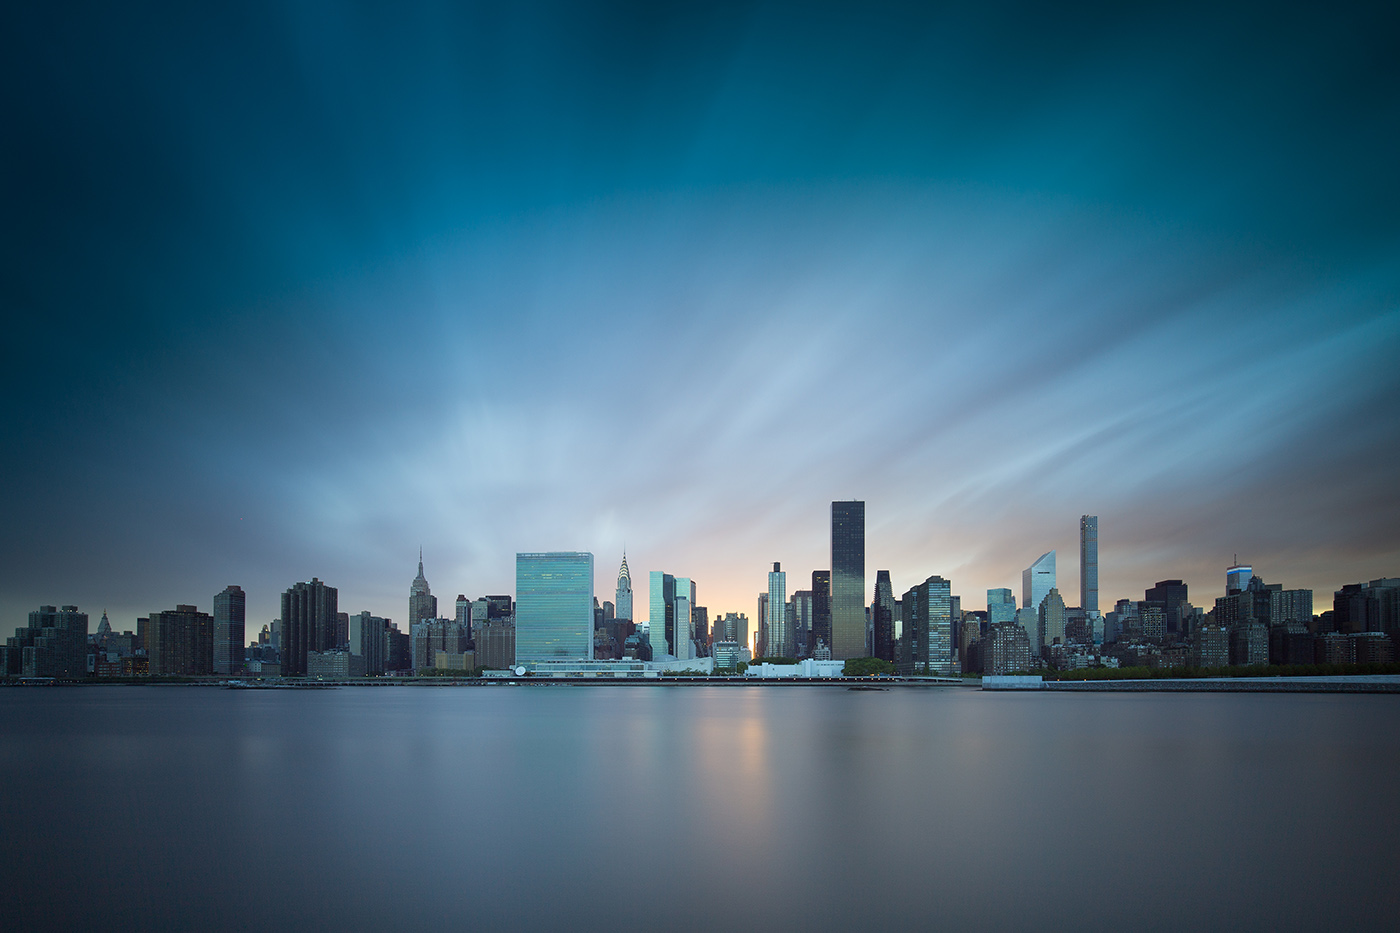 Skyline New York City en pose longue